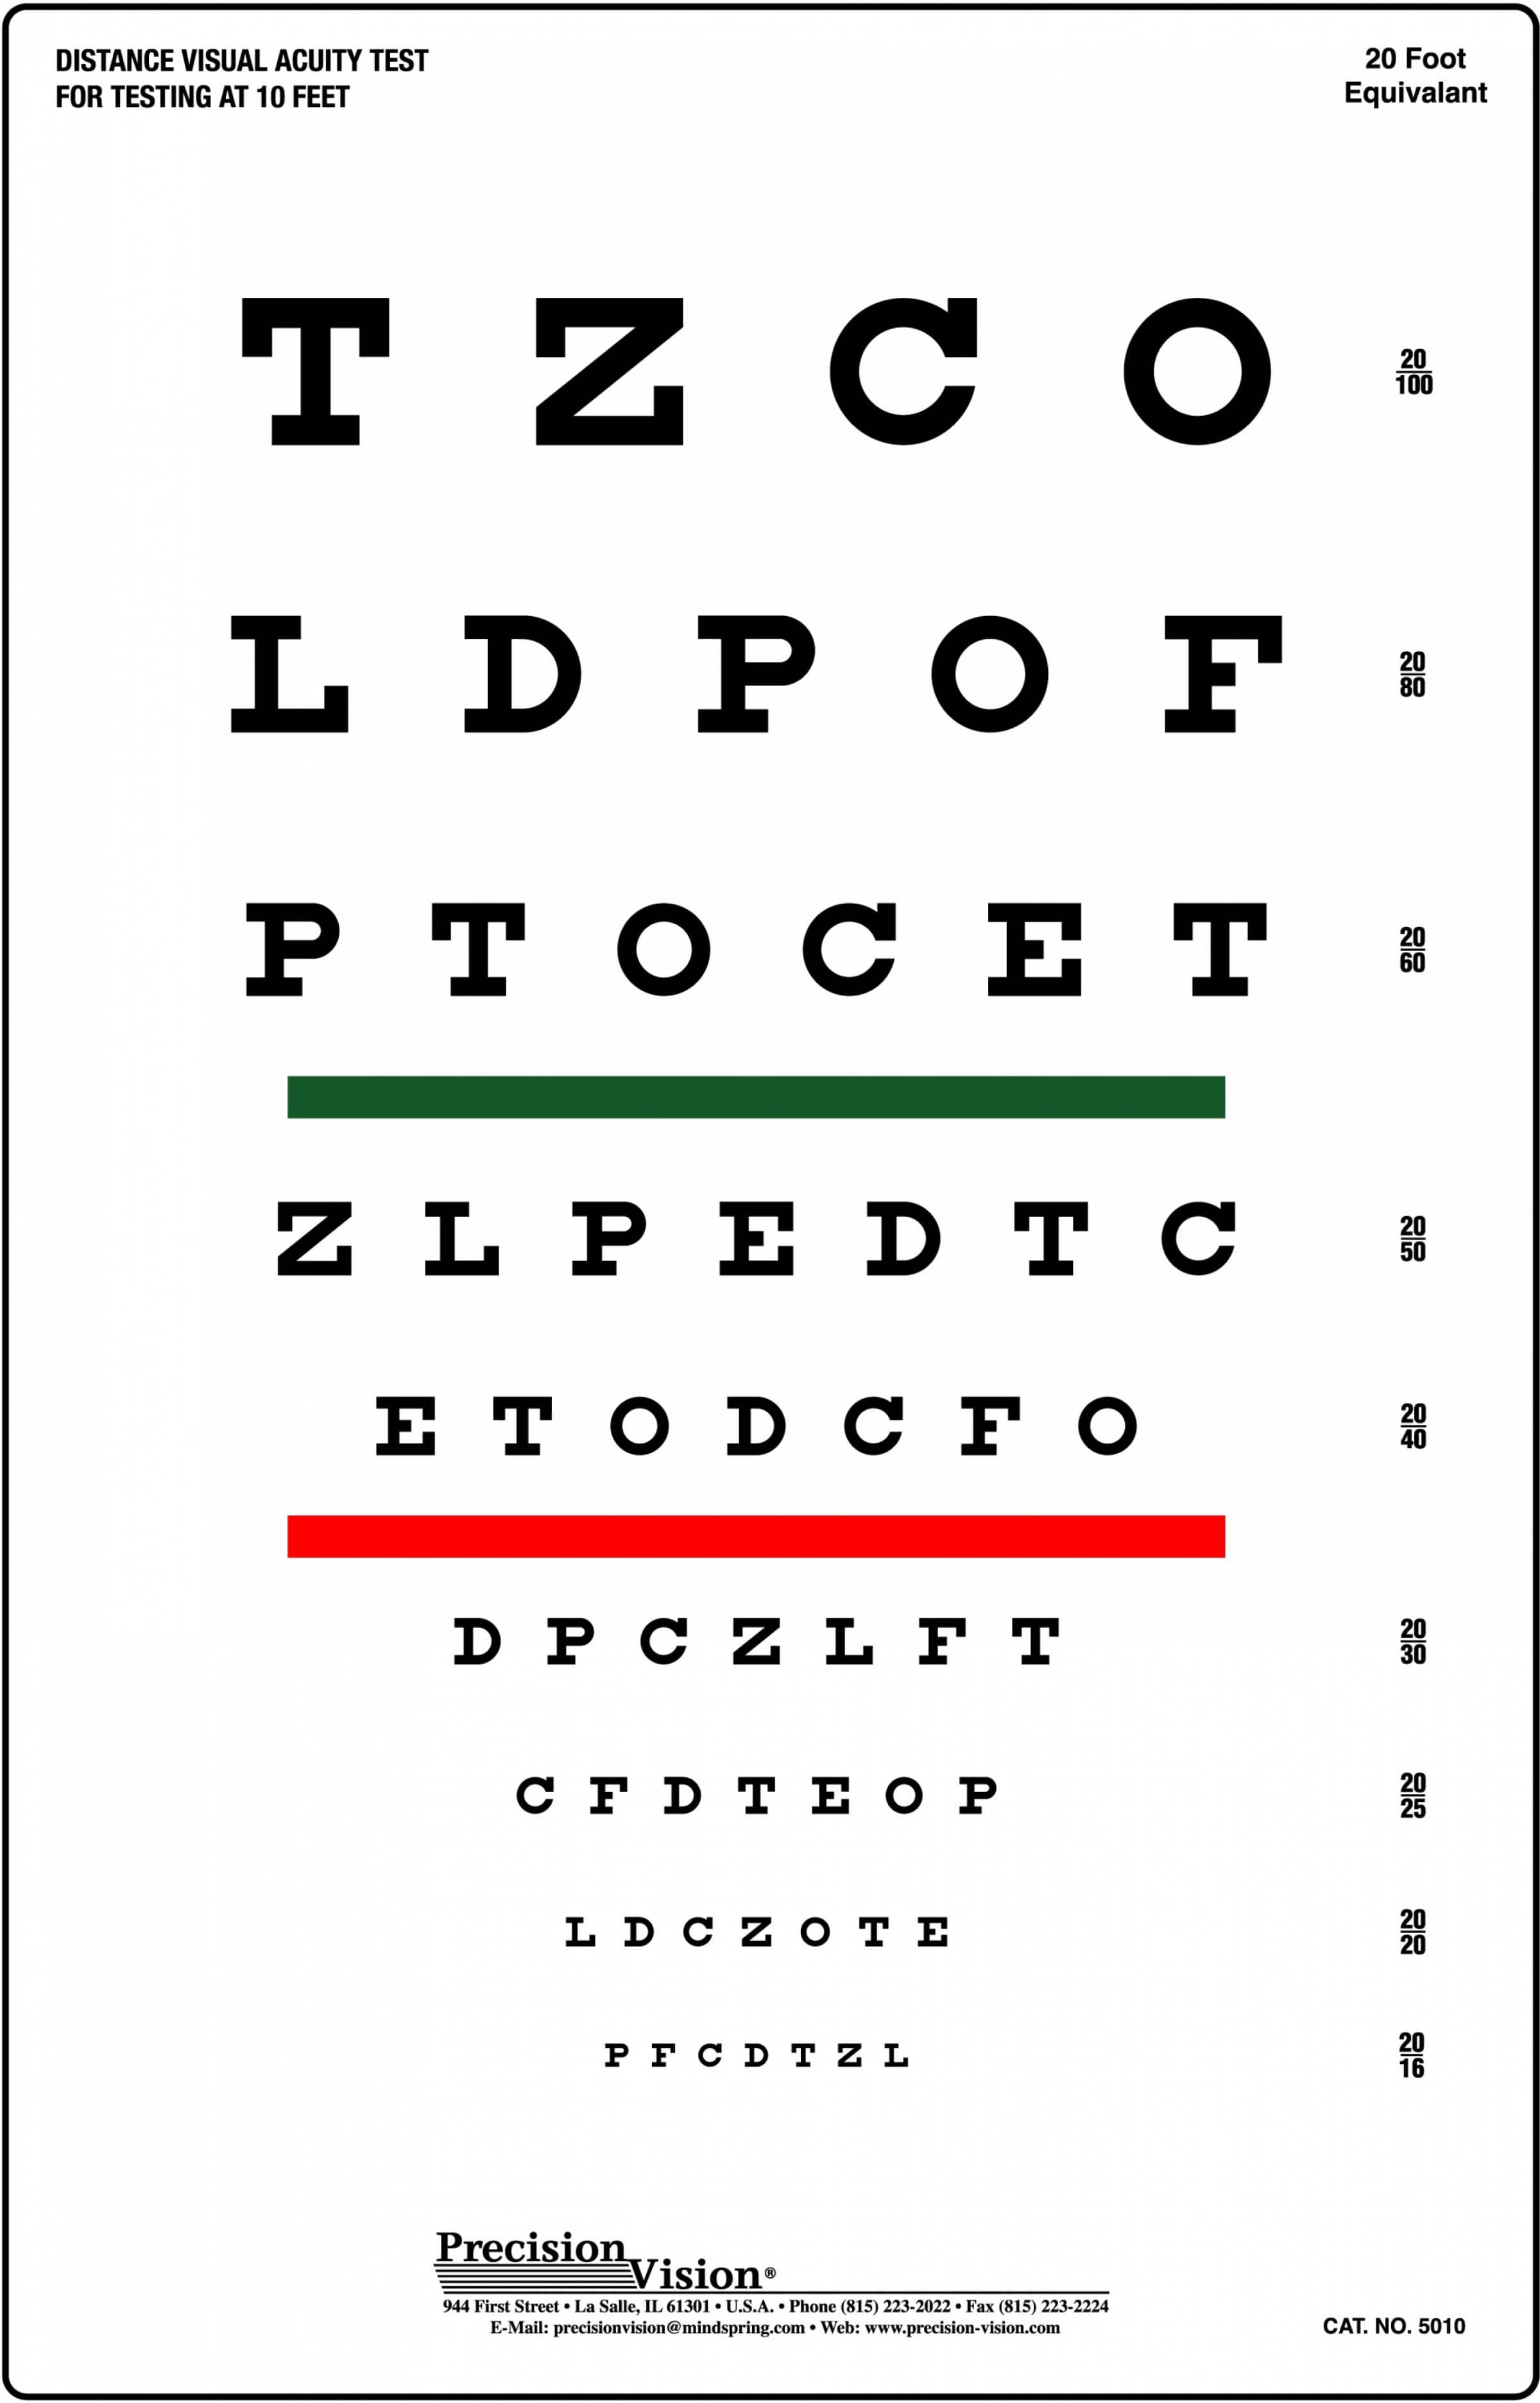 This is a photo of Candid Printable Vision Test